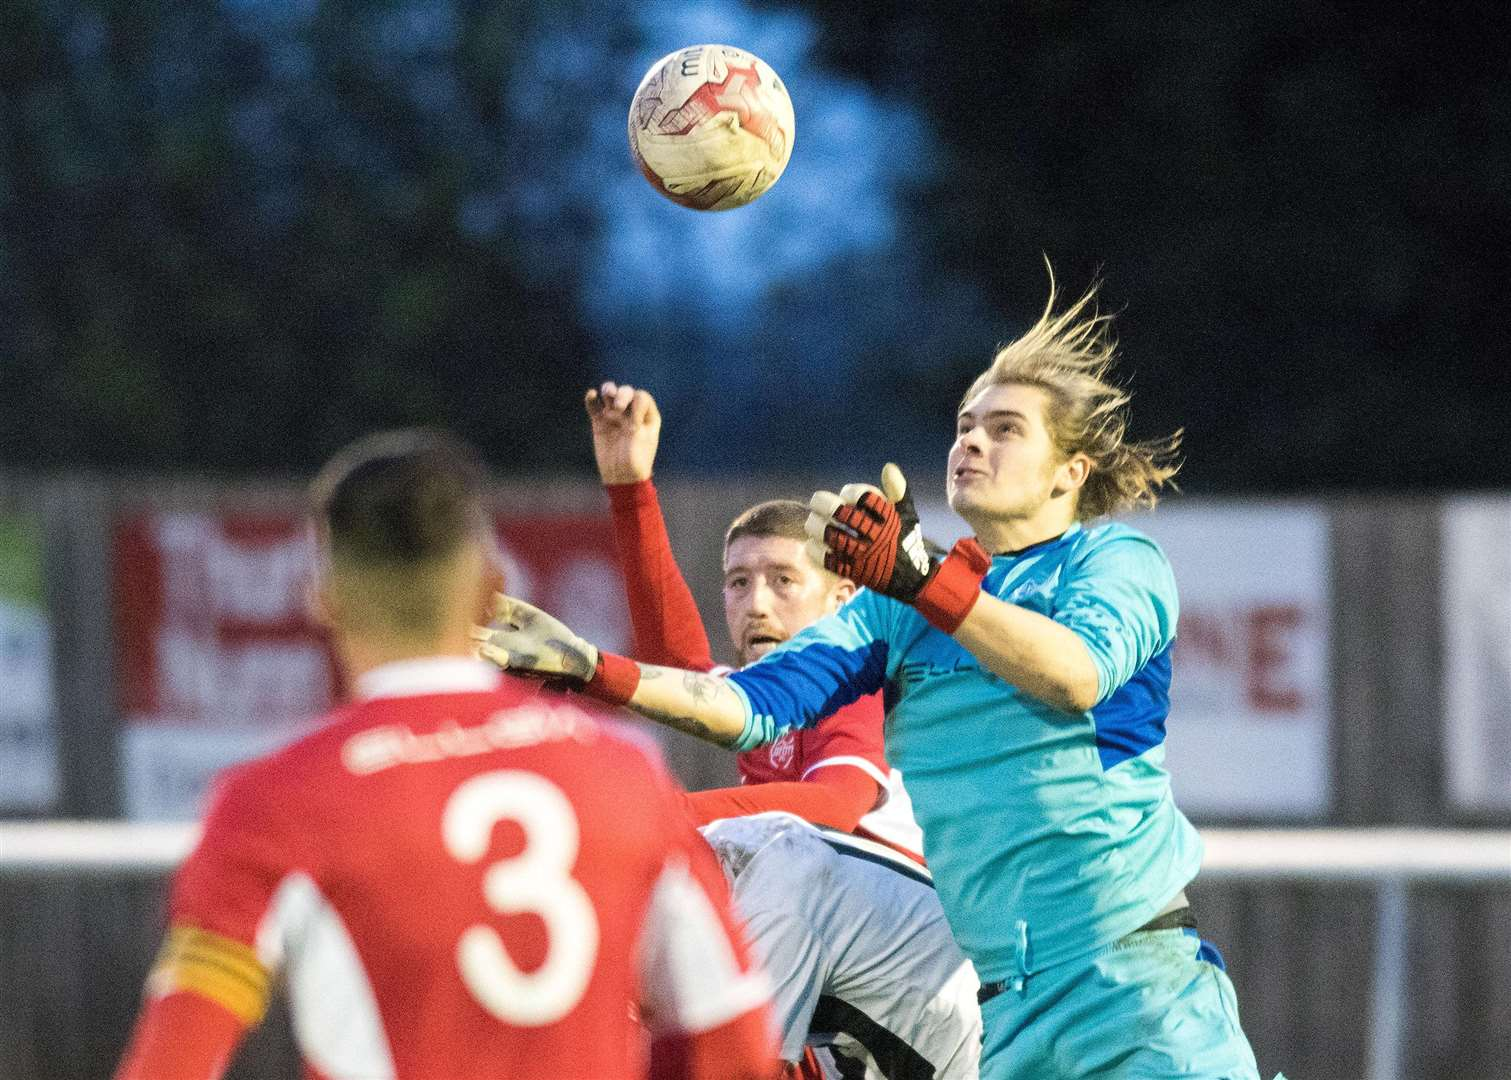 CONFIDENT CLAIM: Evan Jeckells claims a cross ahead of a Melford player